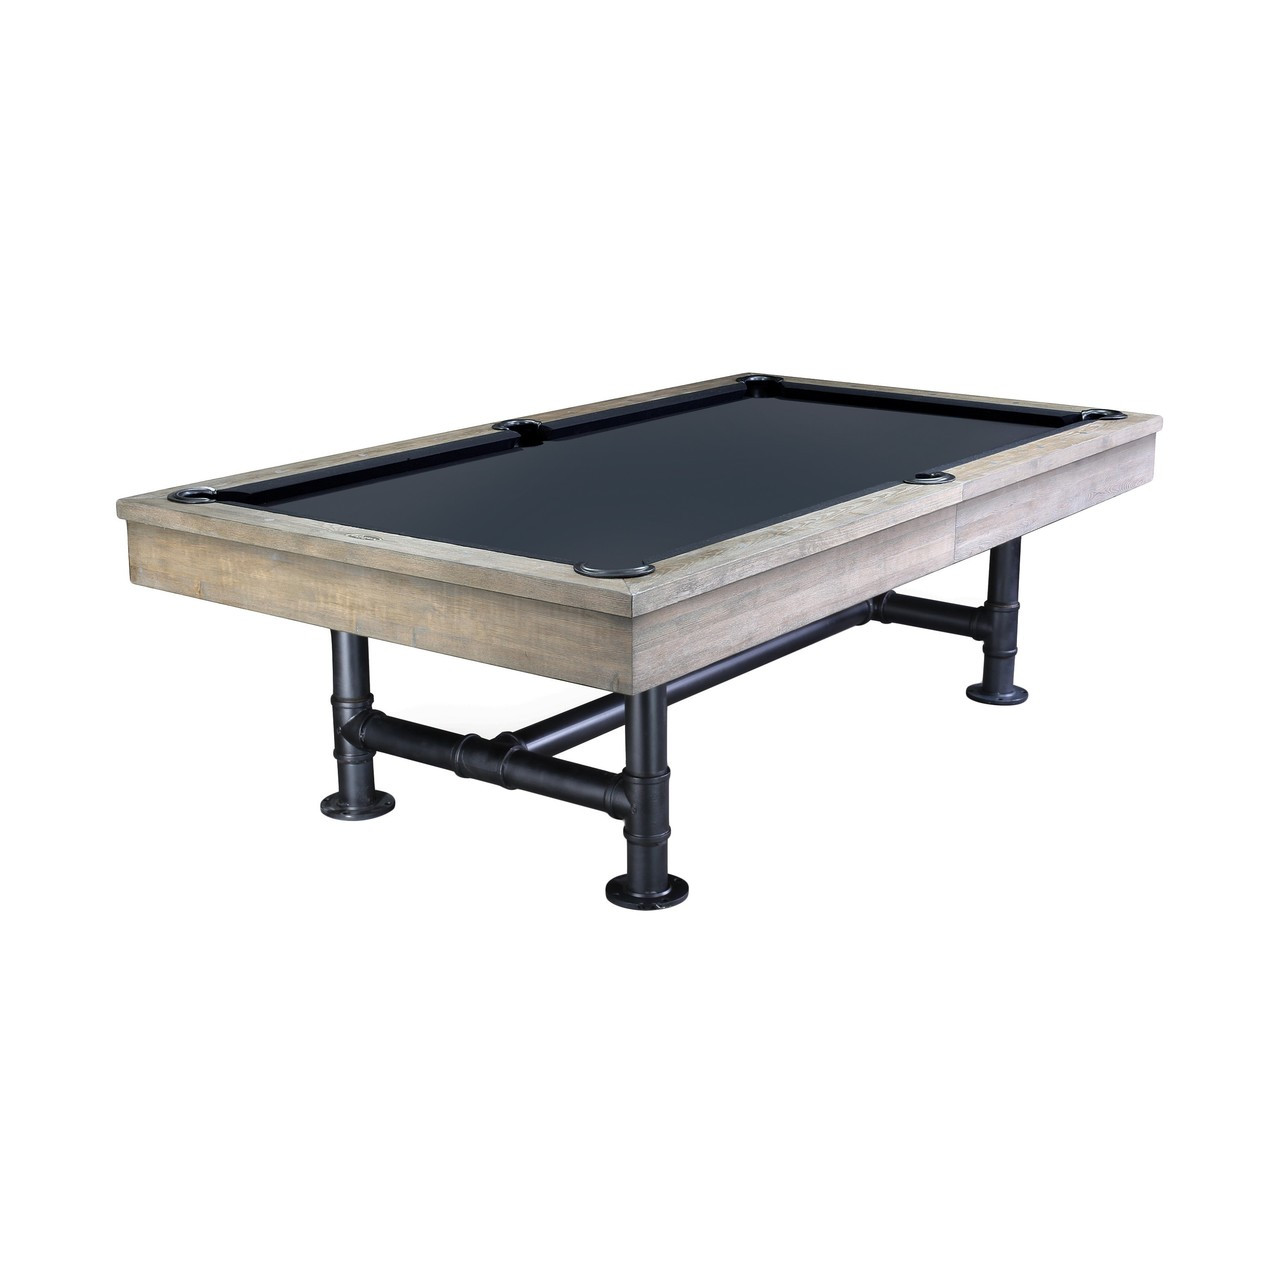 Imperial Bedford Pool Table 7 Ft Billiard Table